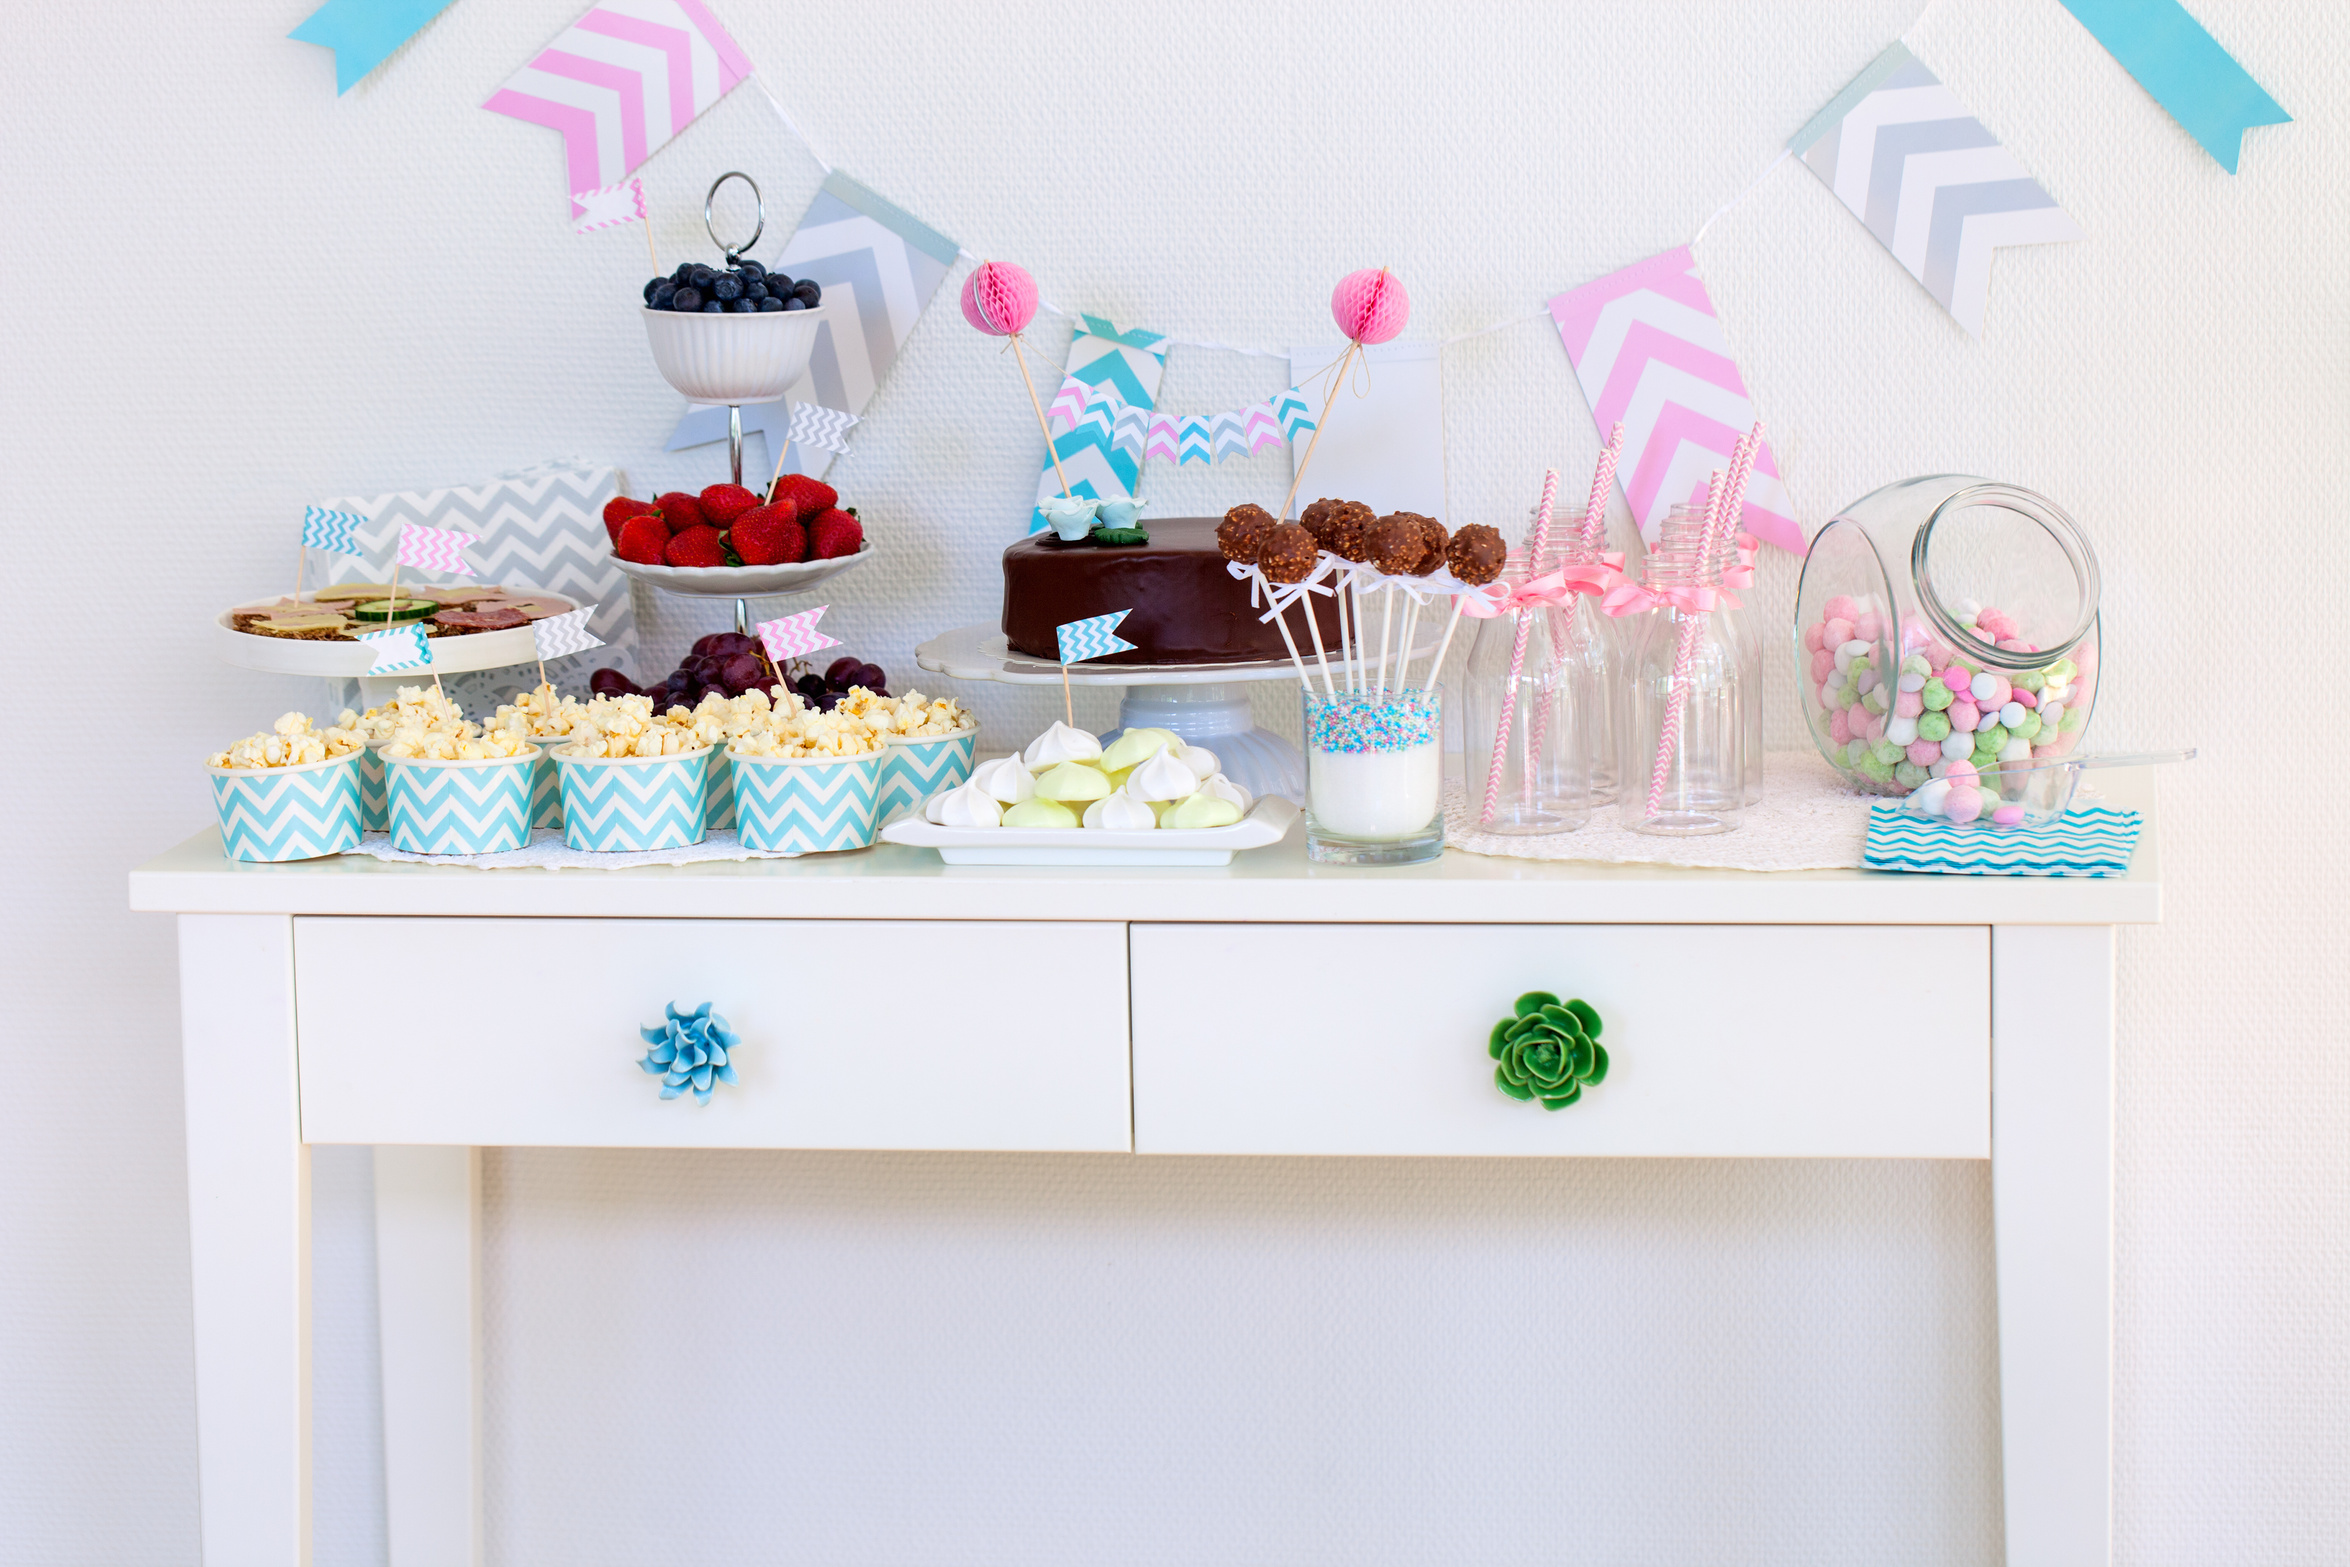 Tips For Decorating A Baby Shower